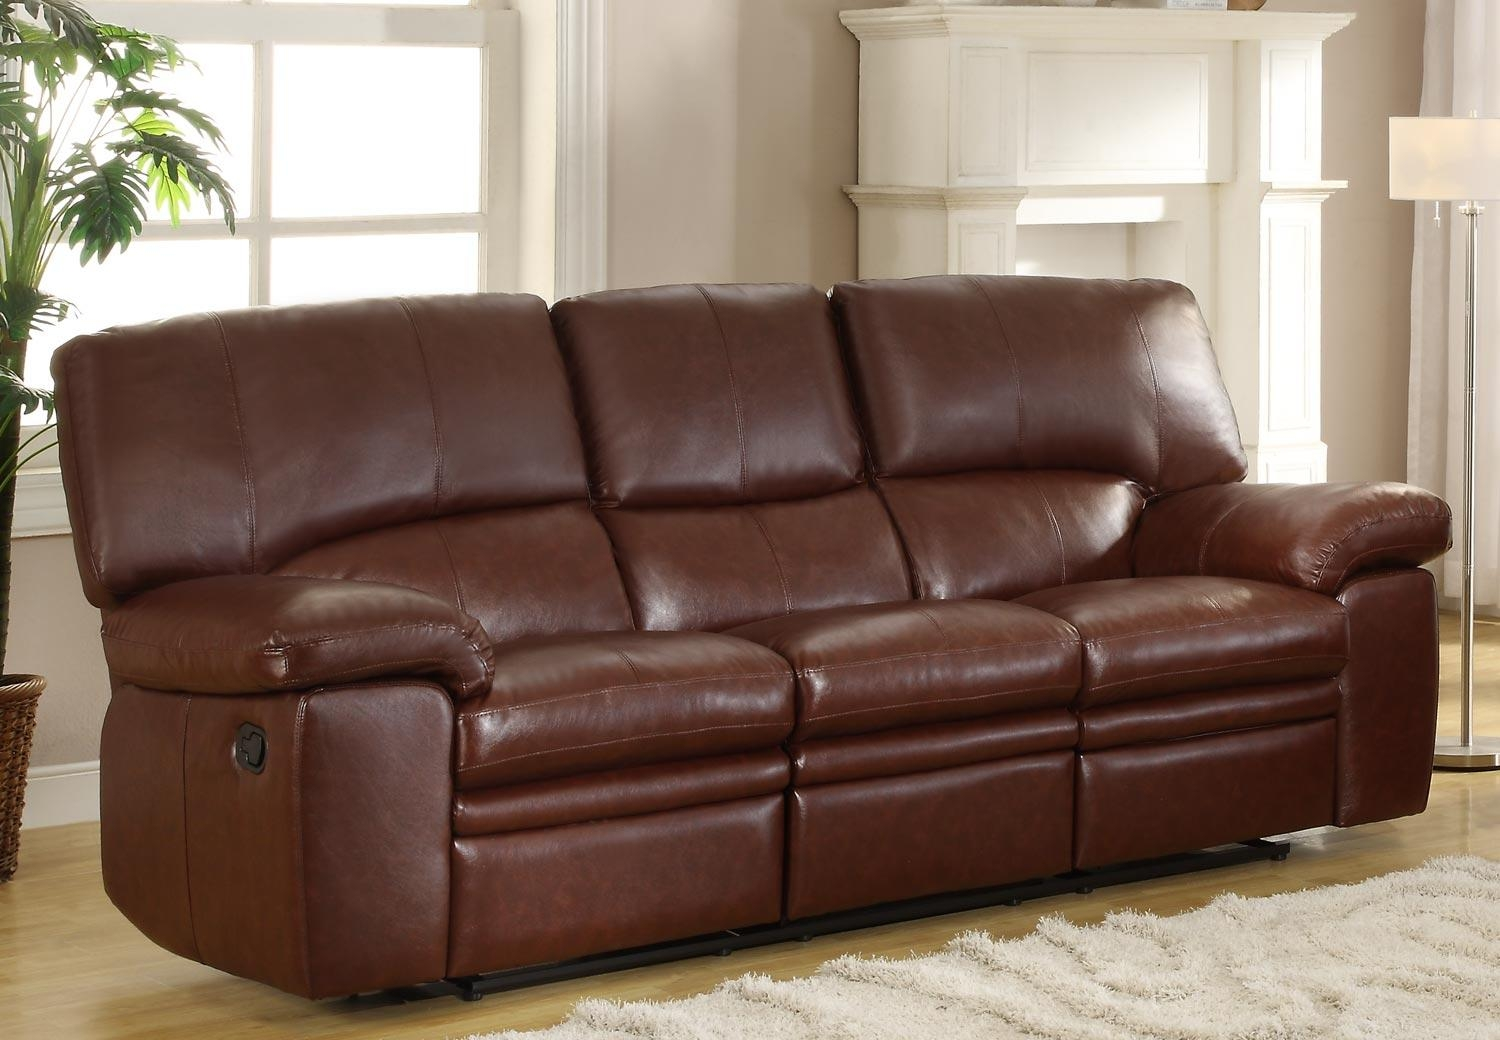 Sofas Center : Blue Leather Recliner Sectionalfa Violinofaleather With Berkline Leather Sofas (Image 14 of 20)